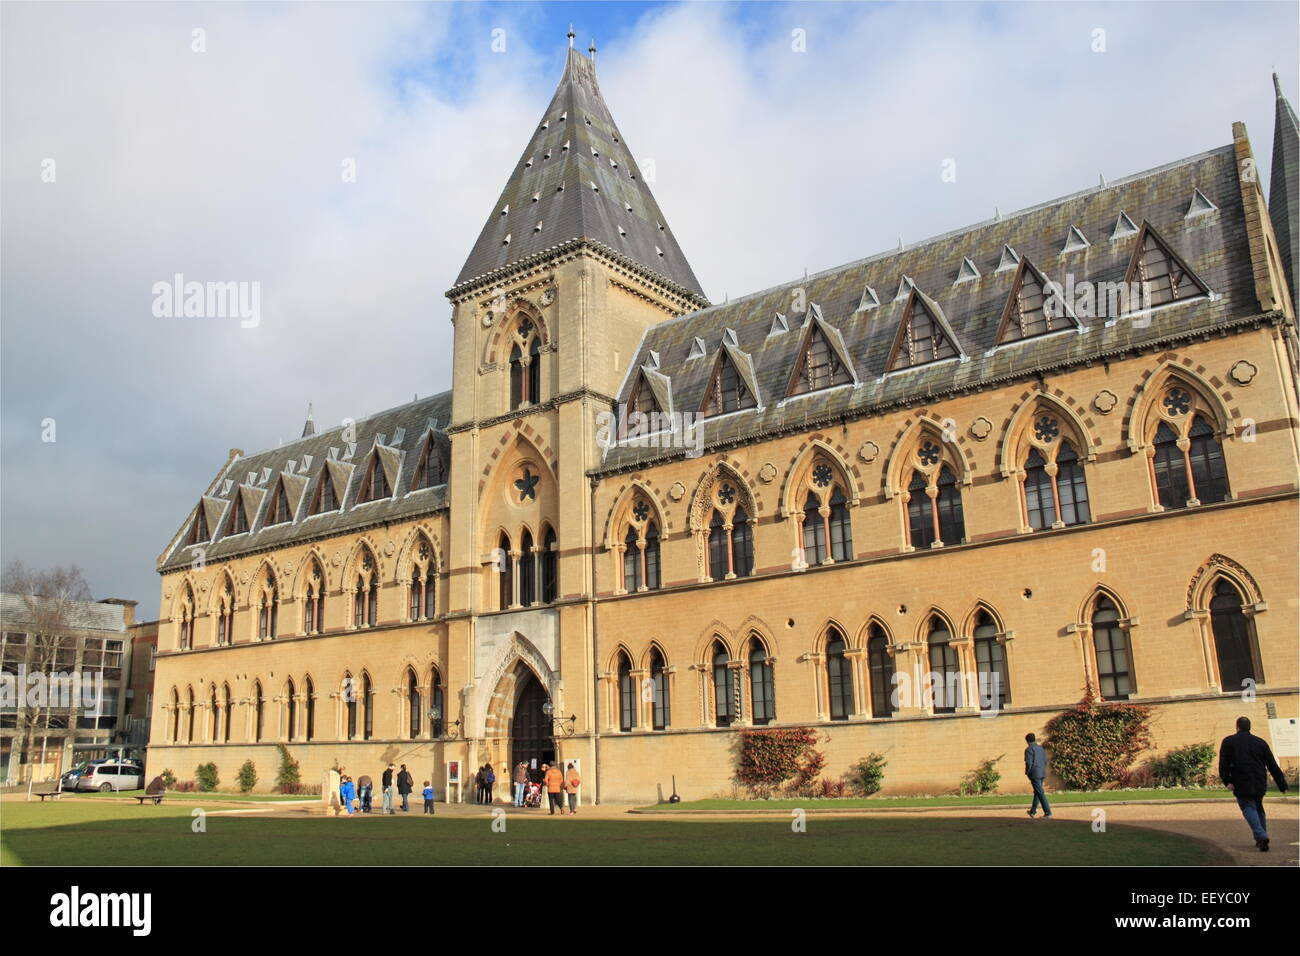 Oxford University Museum of Natural History and Pitt Rivers Museum, Oxford, Oxfordshire, England, Great Britain, - Stock Image